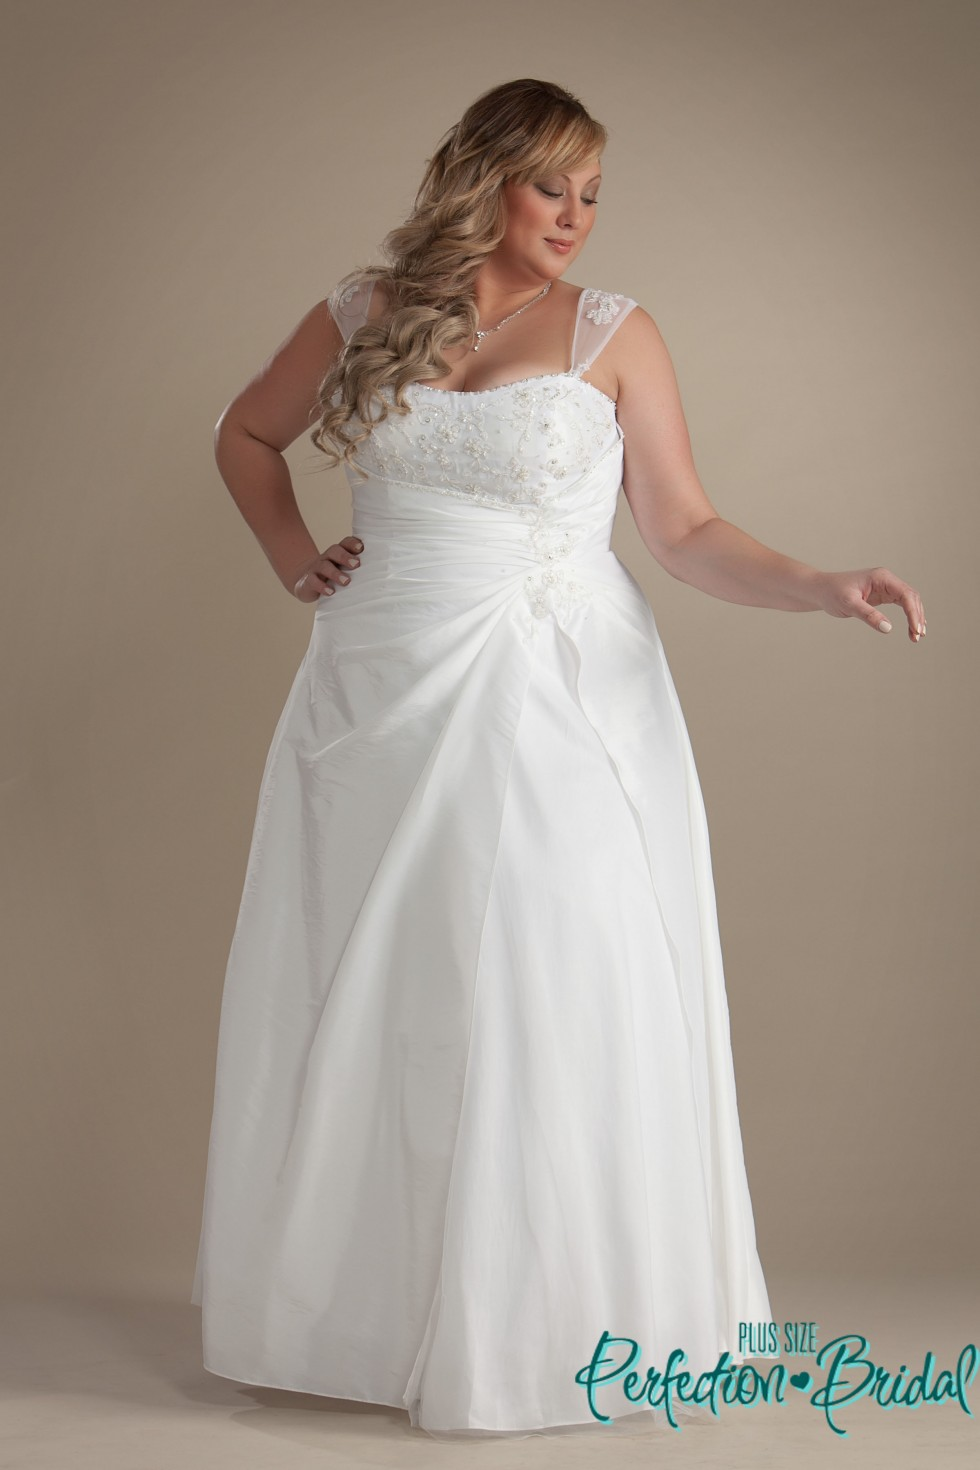 Plus size wedding dresses australia cheap eligent prom for Plus size wedding dresses for cheap